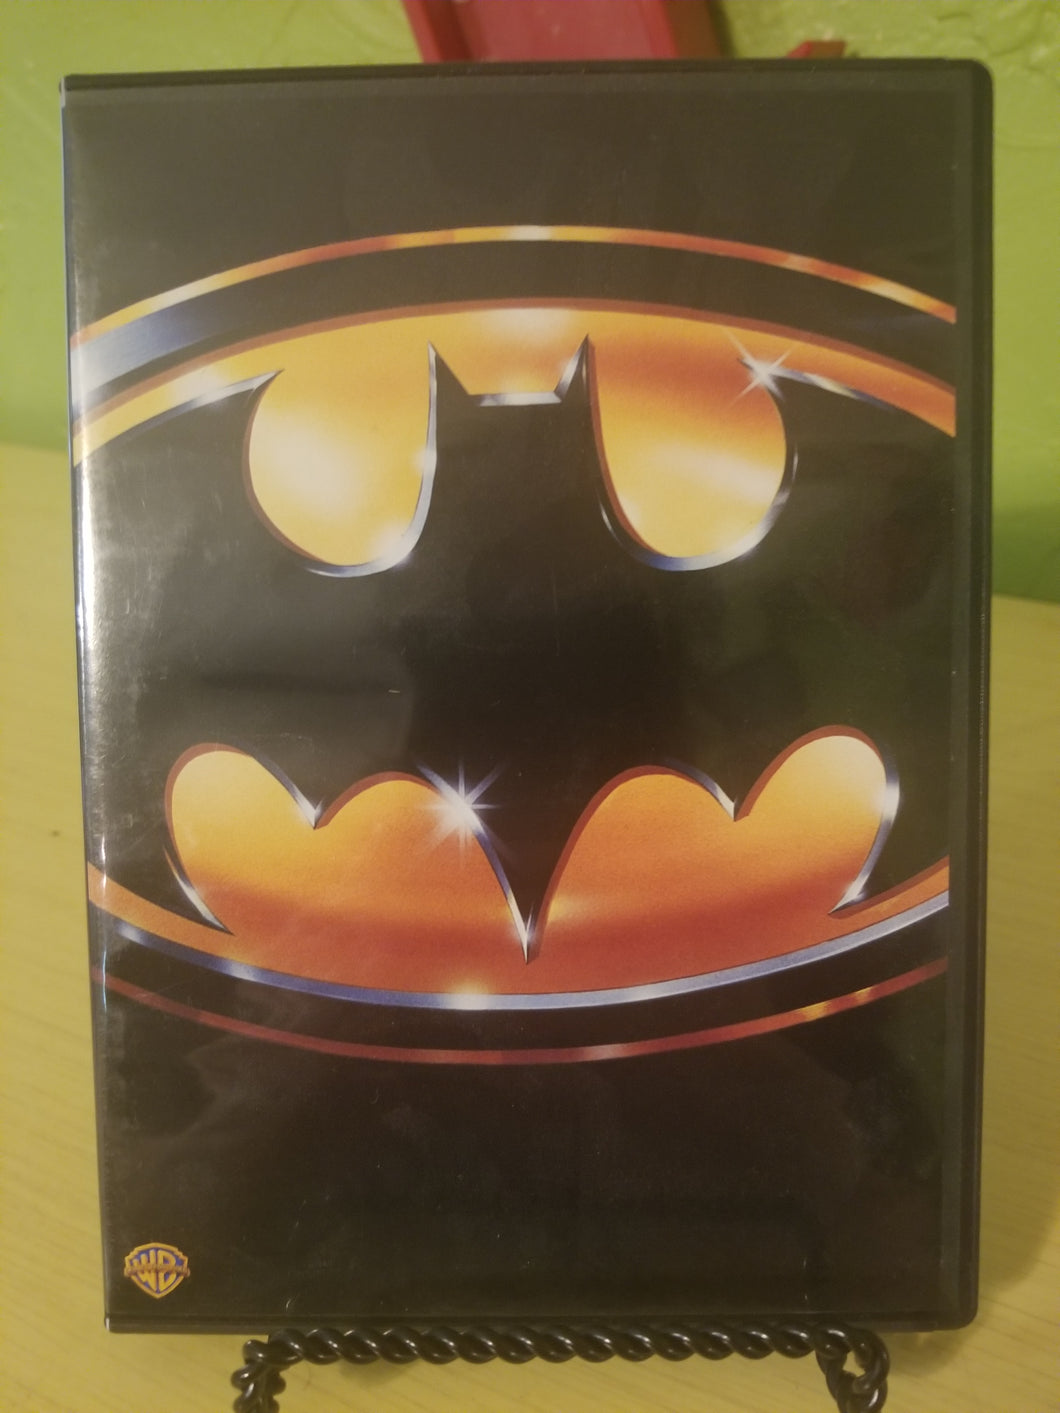 Batman 1989 DVD